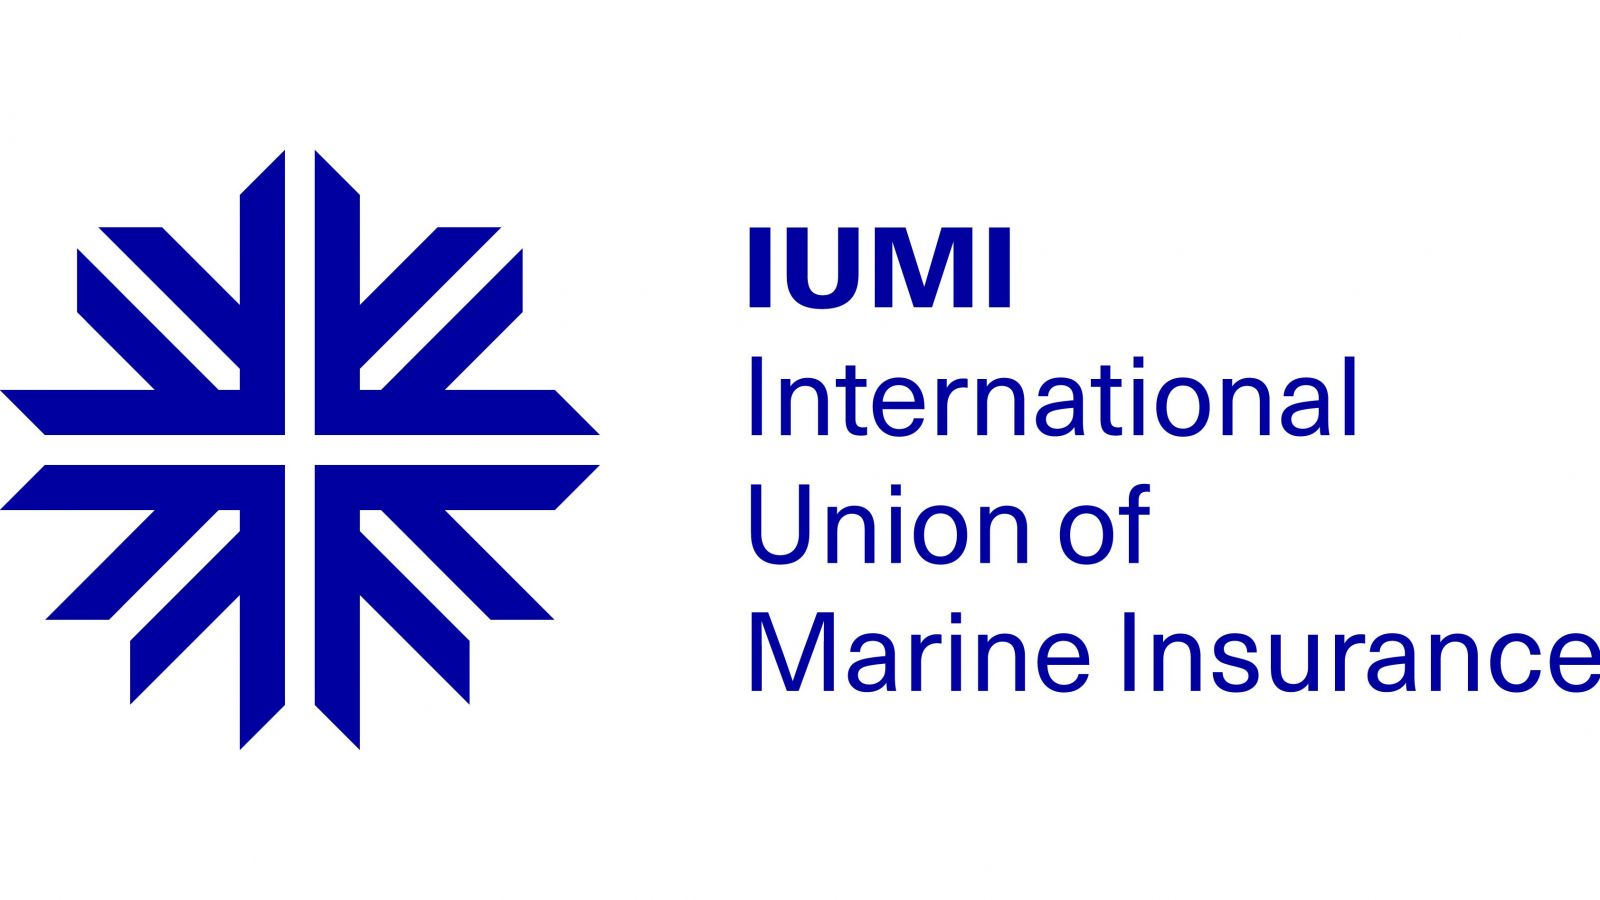 More infrastructure support required to facilitate insurance for Arctic sailings, urges IUMI